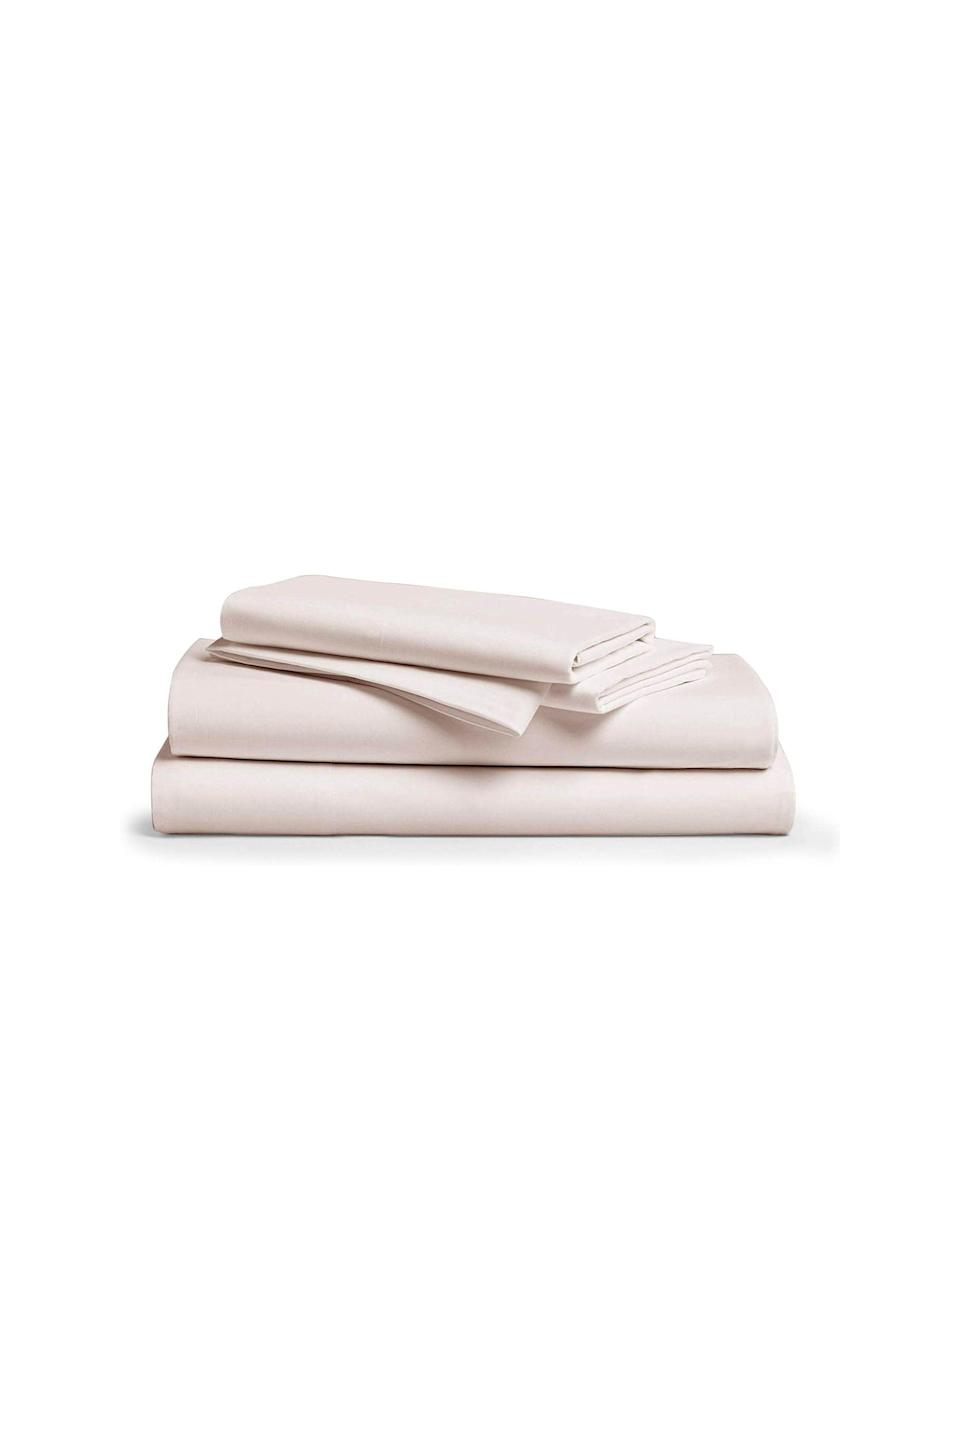 """<p><strong>Comfy Sheets</strong></p><p>Amazon</p><p><a href=""""https://www.amazon.com/dp/B078C6C26R?tag=syn-yahoo-20&ascsubtag=%5Bartid%7C10049.g.31275980%5Bsrc%7Cyahoo-us"""" rel=""""nofollow noopener"""" target=""""_blank"""" data-ylk=""""slk:shop now"""" class=""""link rapid-noclick-resp"""">shop now</a></p><p>Get your regal on with these top-rated silky-smooth sheets made from Egyptian cotton. </p>"""